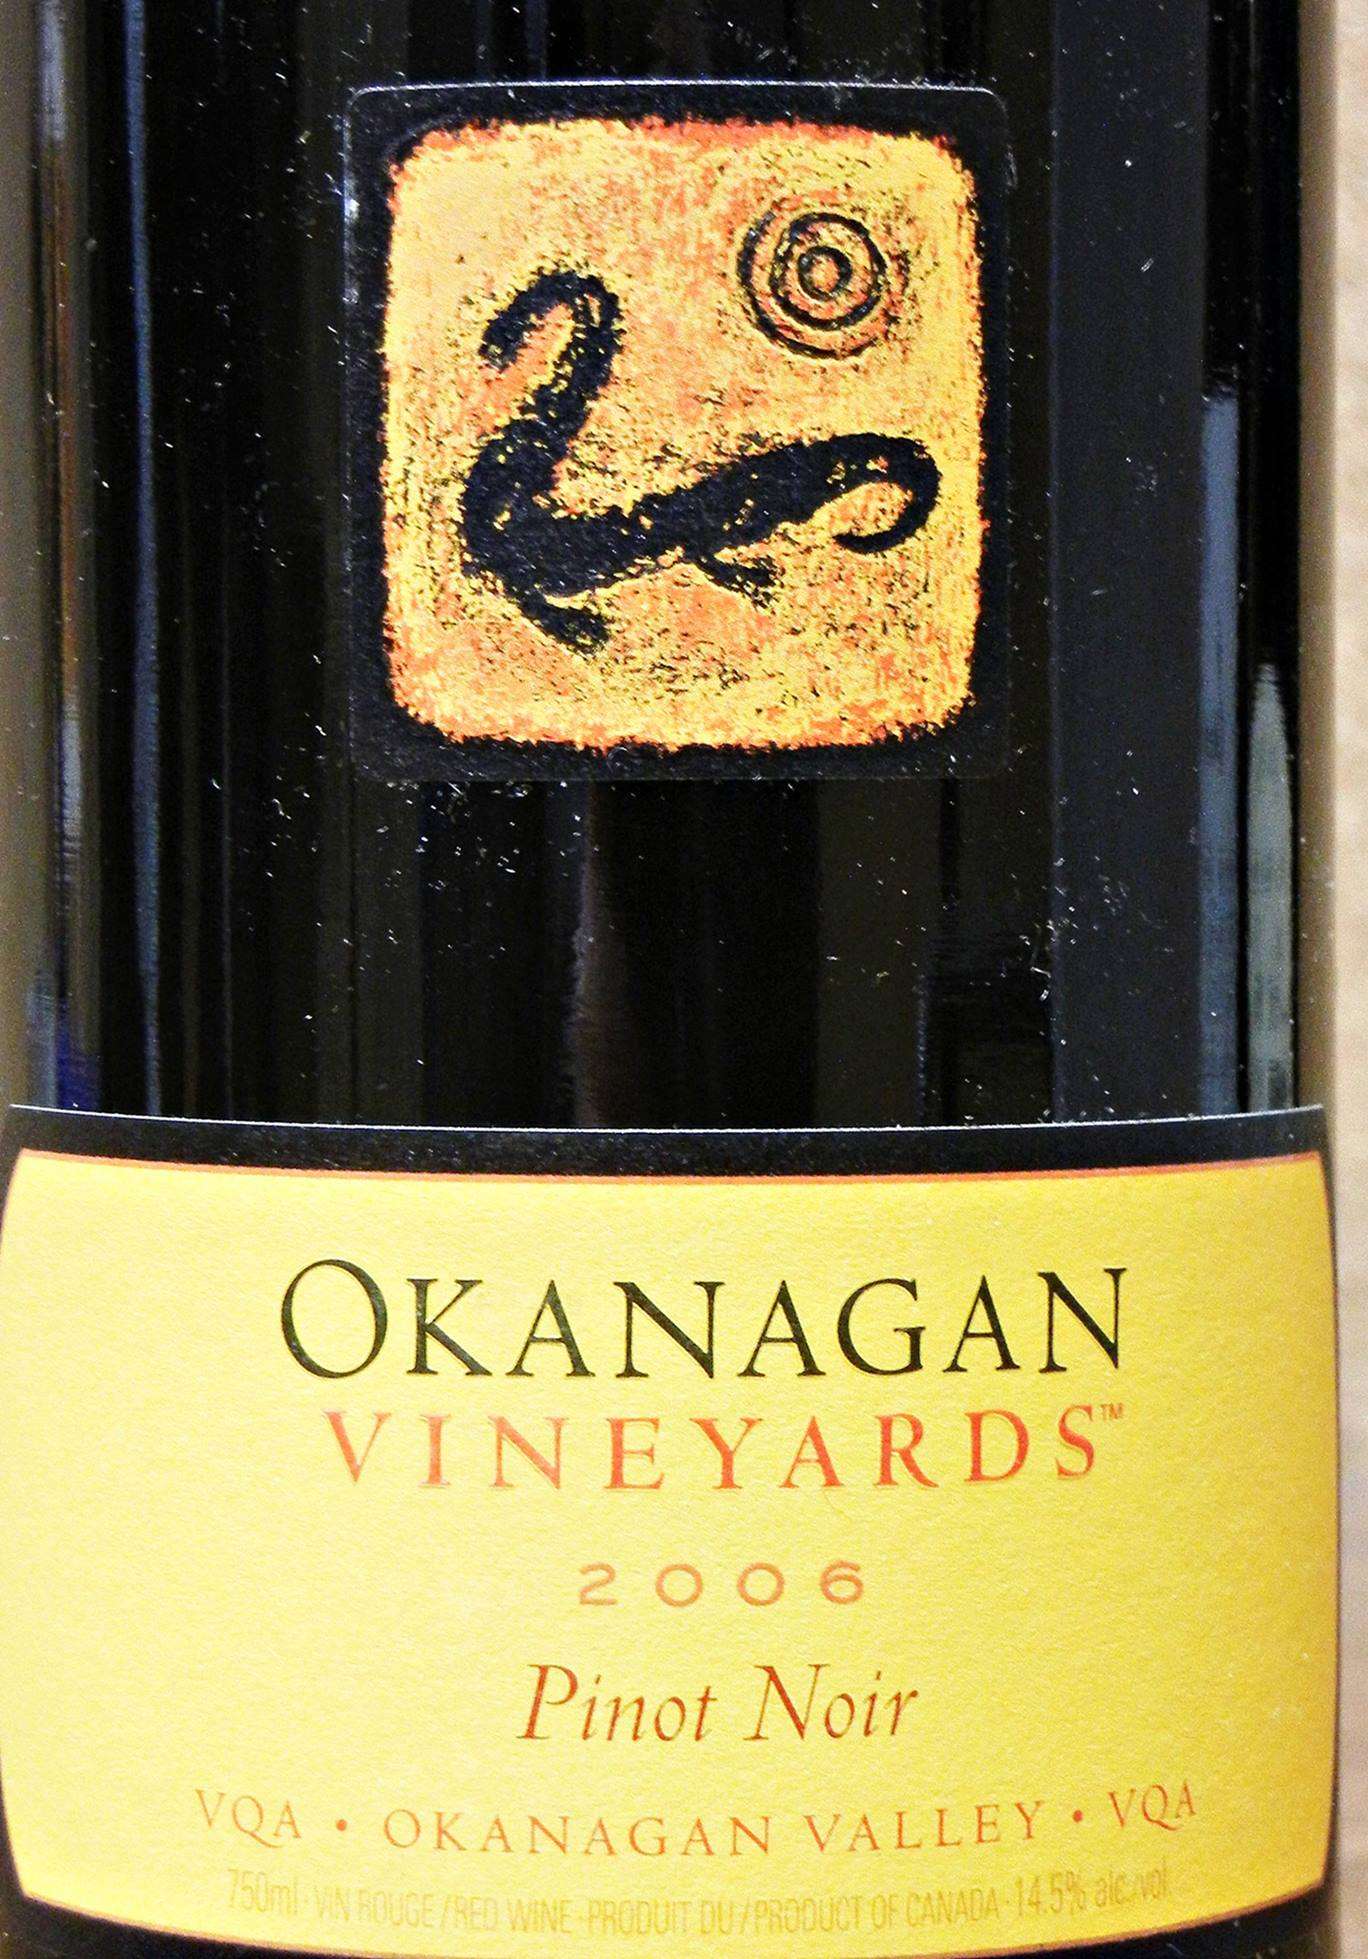 Okanagan Vineyards Pinot Noir 2006 Label - BC Pinot Noir Tasting Review 1